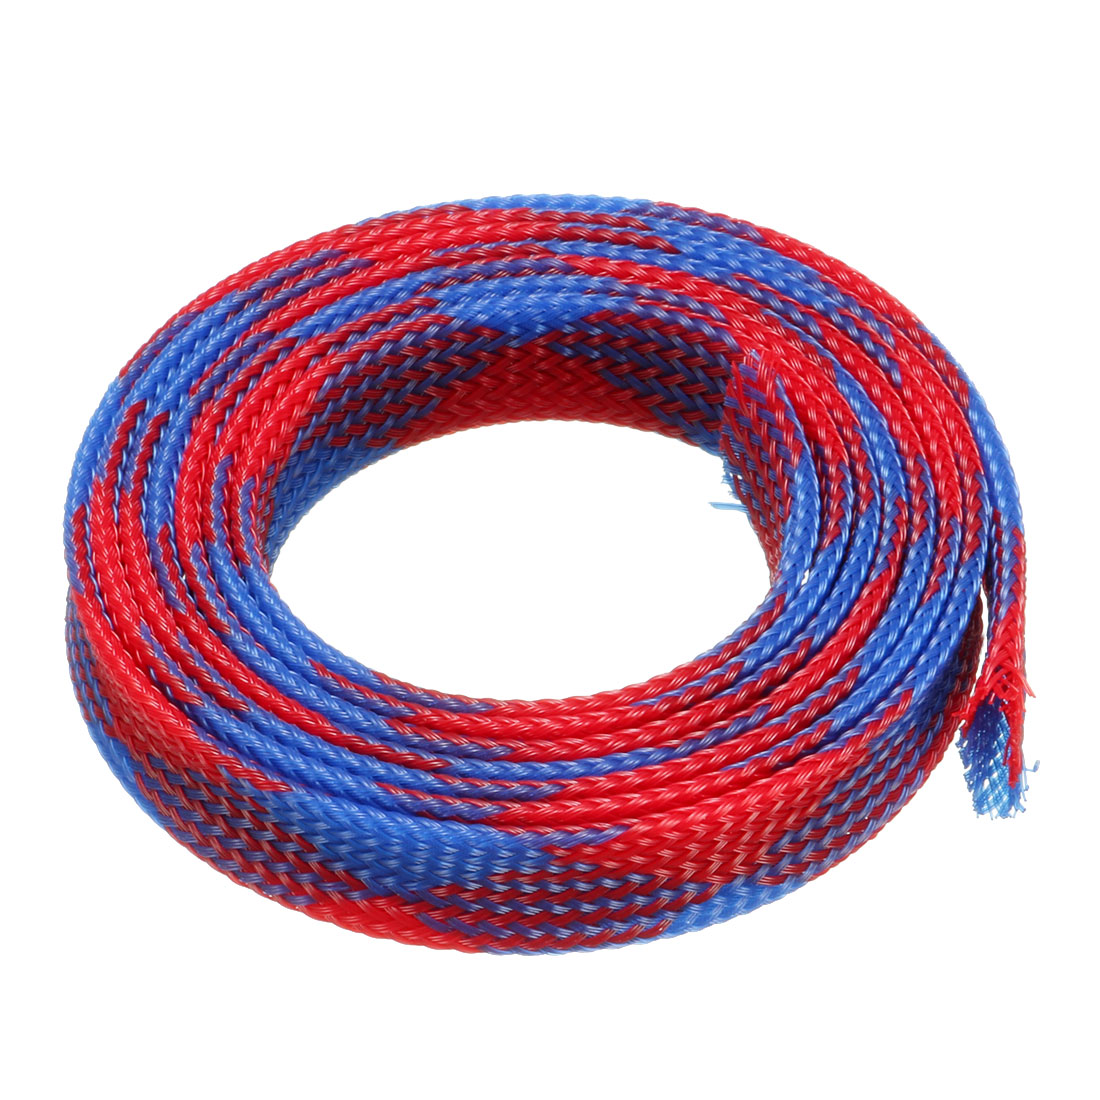 10mm Dia Tight Braided PET Expandable Sleeving Cable Wrap Sheath Blue Red 1M Length